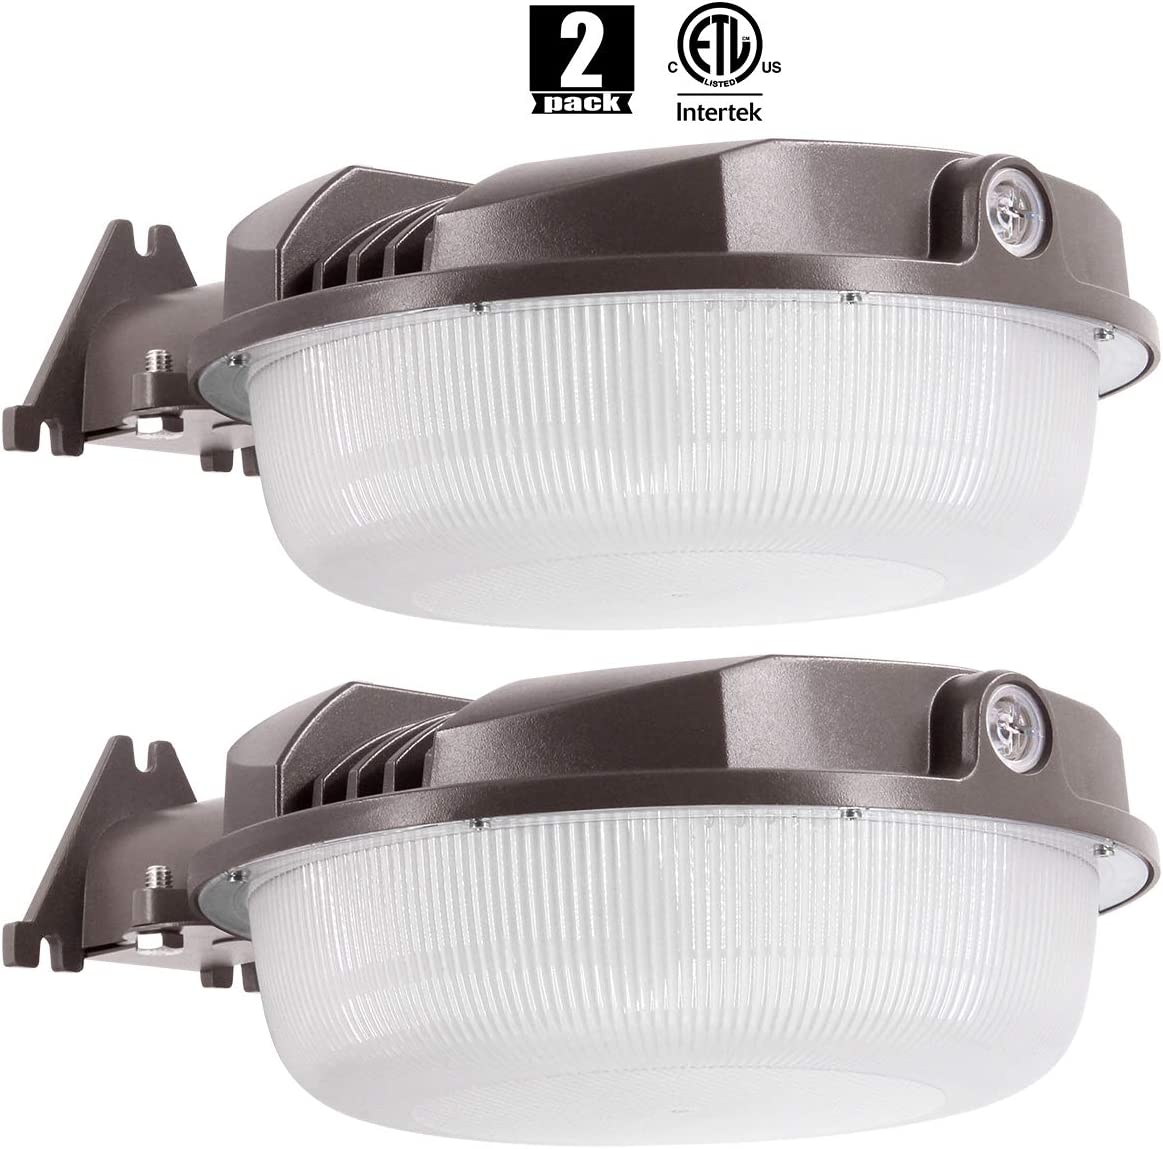 2Pack LED Yard Light 70W (Photocell Included),LED Dusk to Dawn(250-1000W Equiv.),5000K Daylight Floodlight, DLC & ETL-Listed Yard Light for Area Lighting, Wet Location Available50K